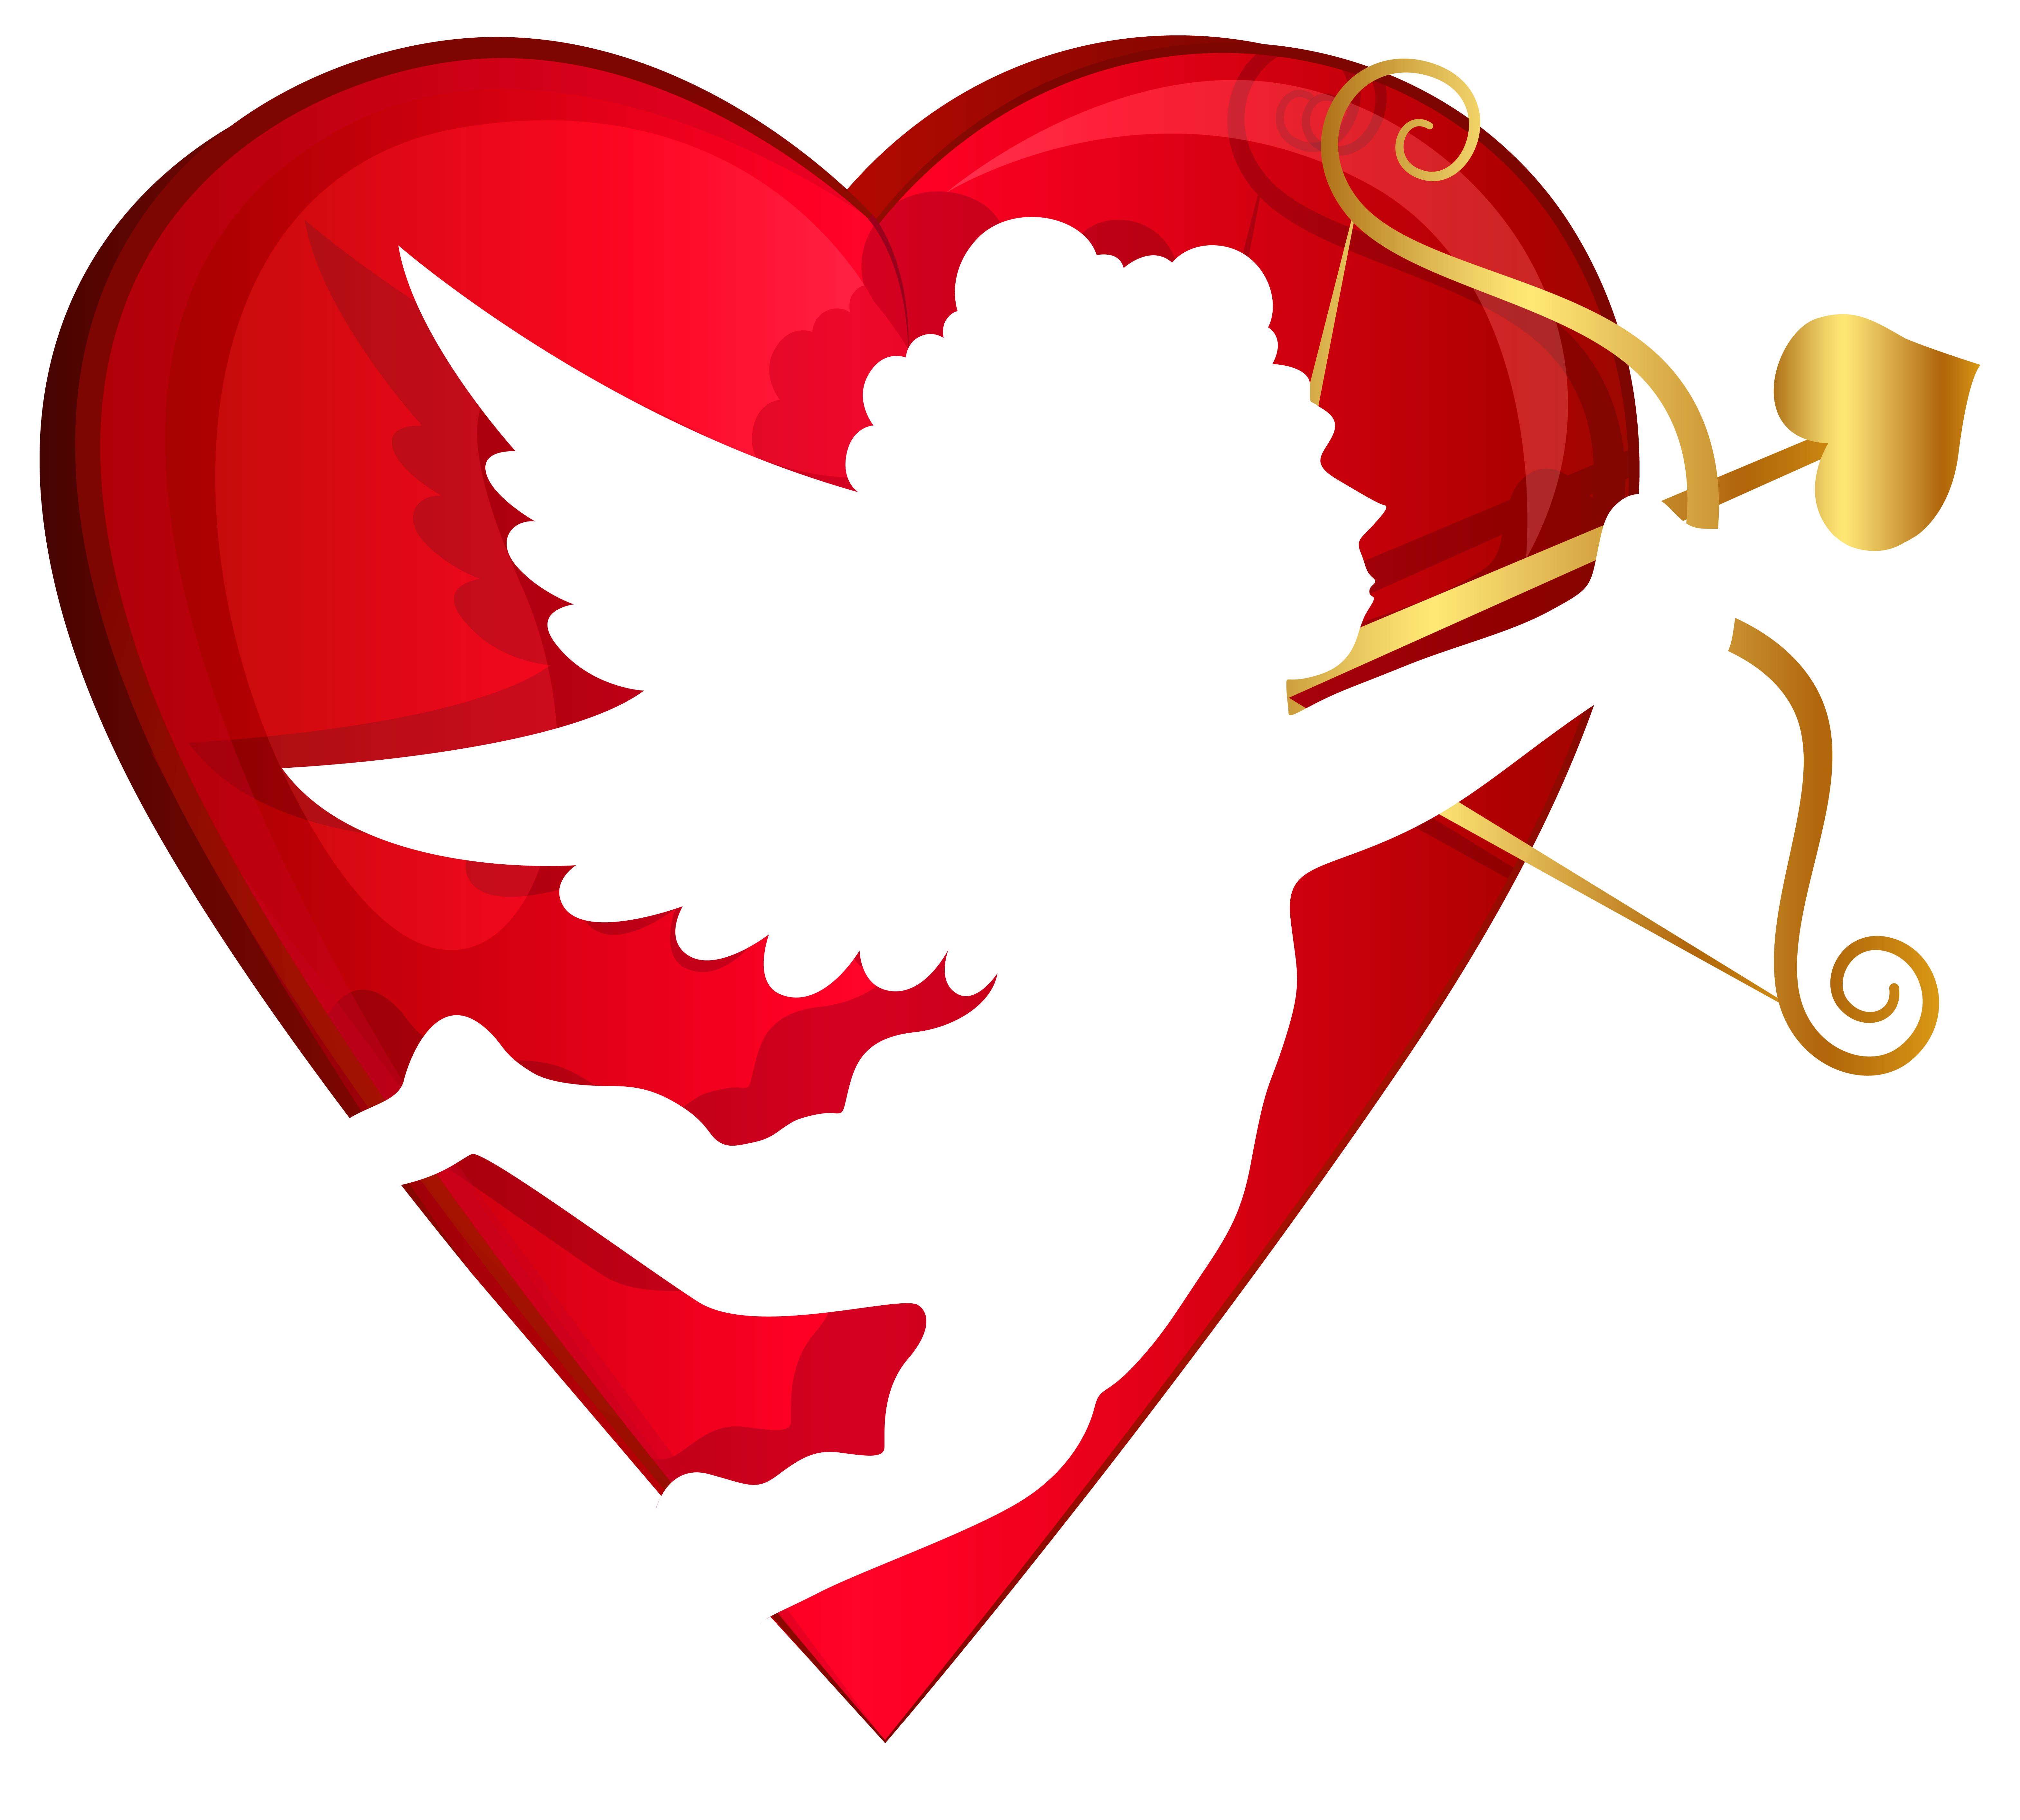 Red Heart and Cupid Transparent PNG Clip Art Image.